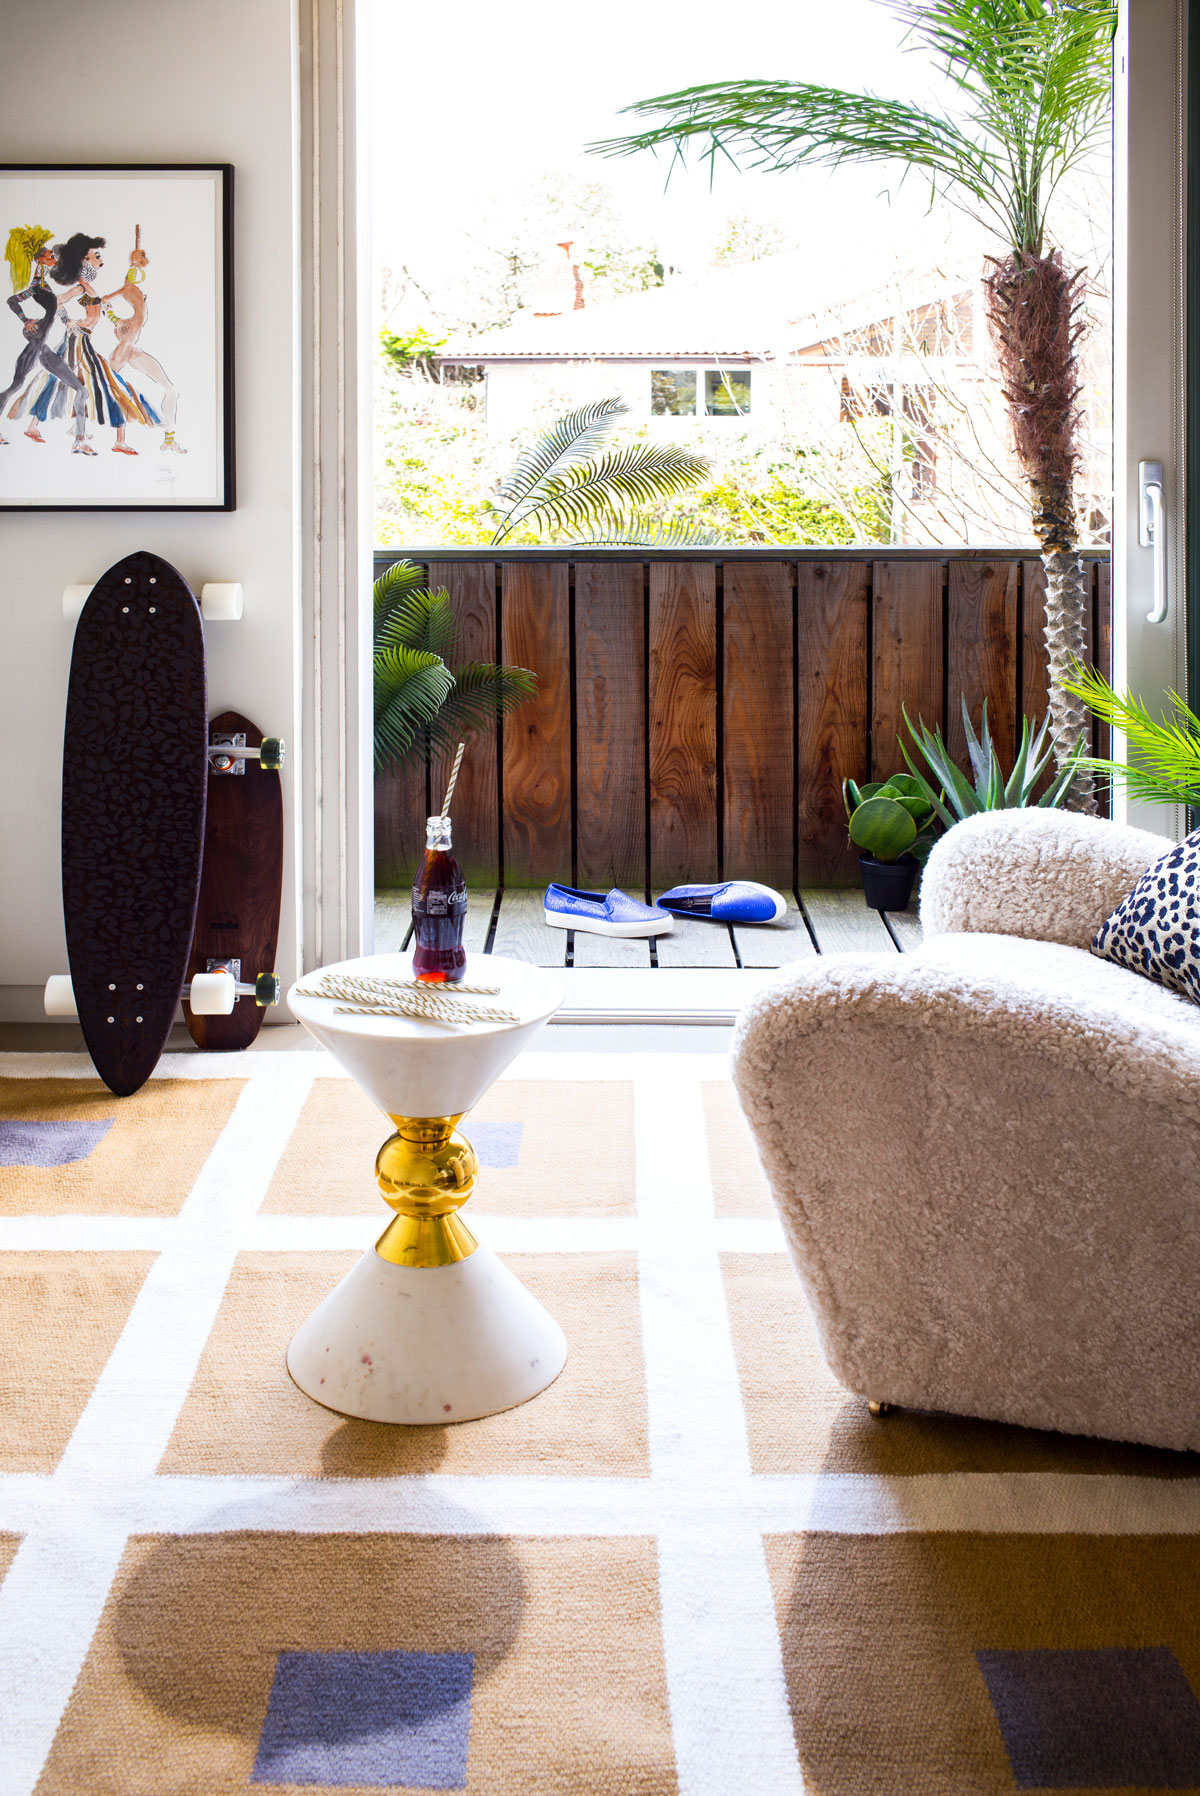 How To Get The 1970s California Cool Look At Home